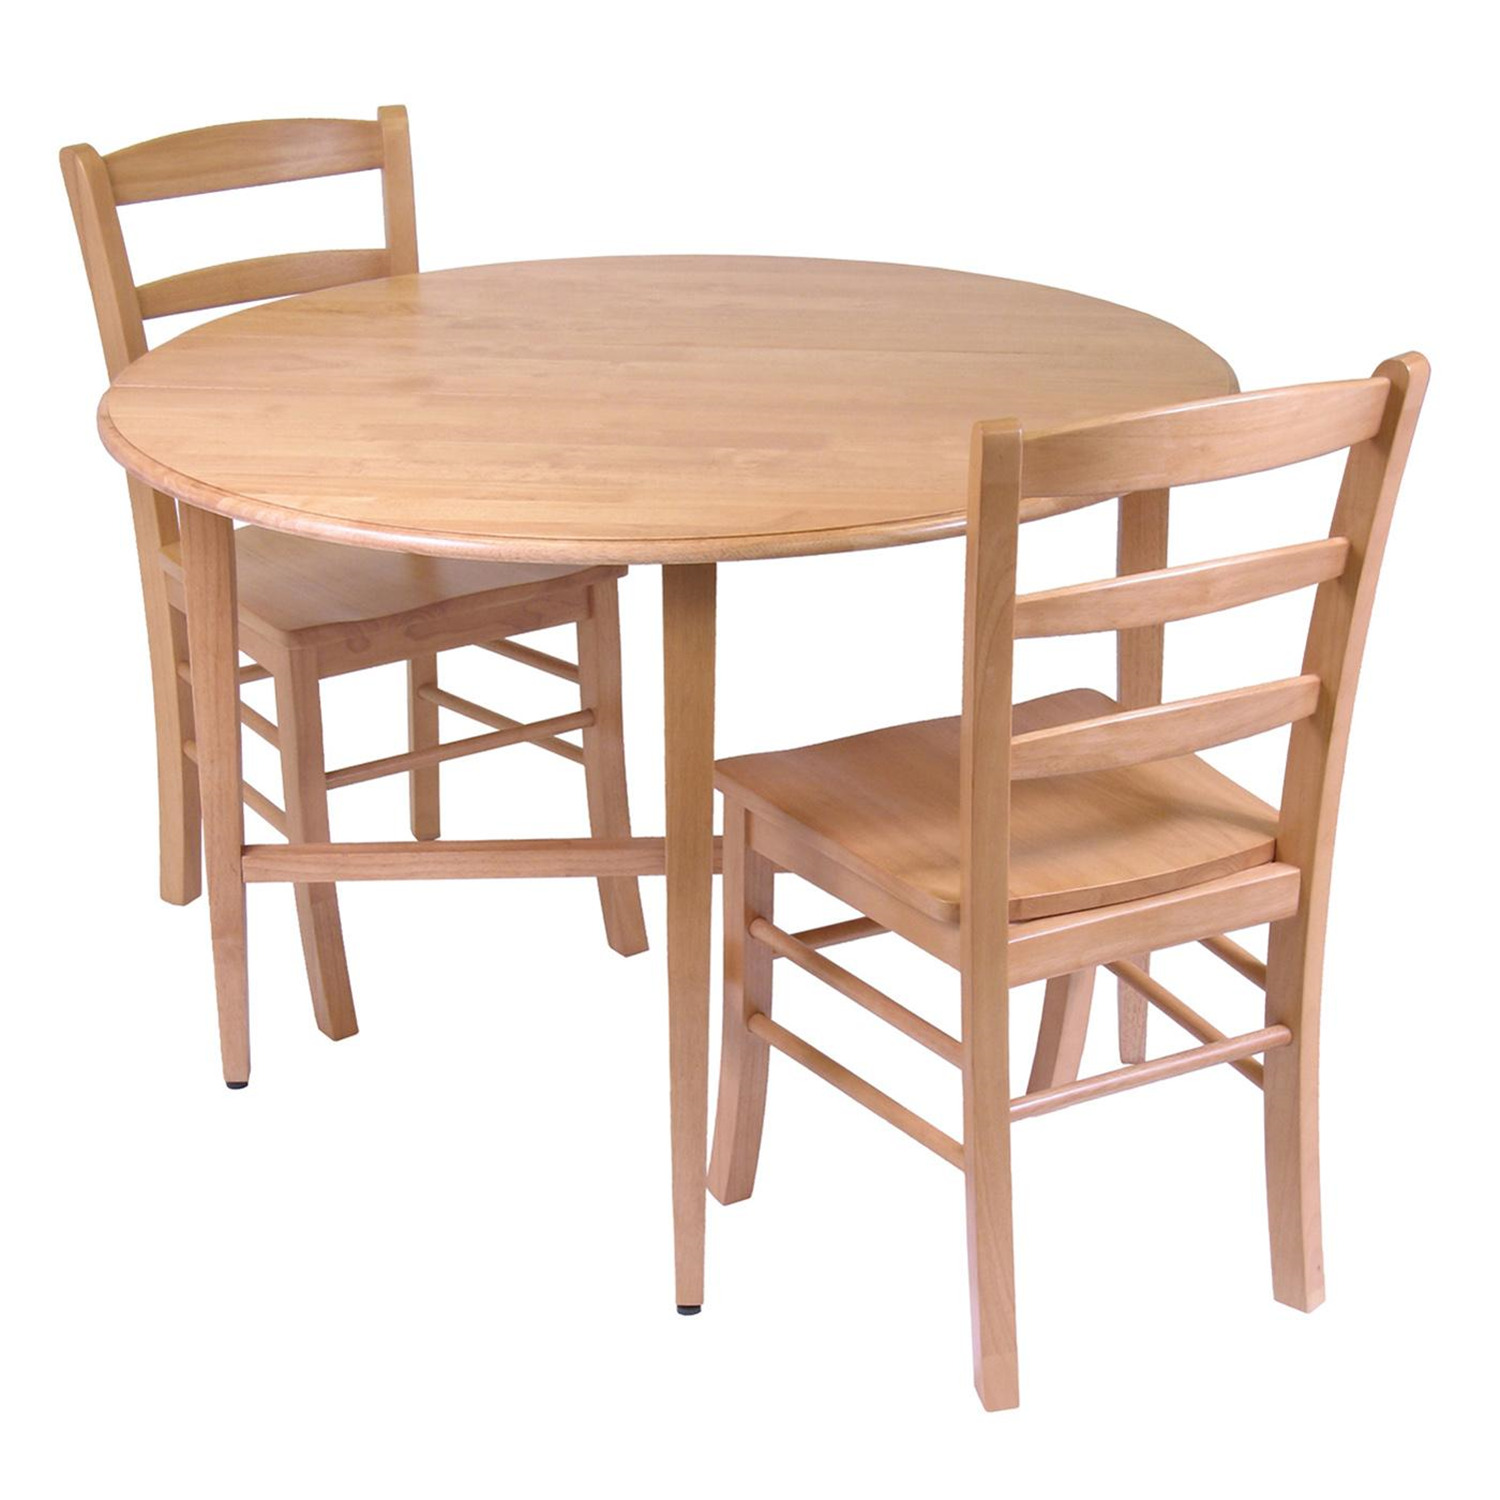 Winsome Hannah 3pc Dining Set Drop Leaf Table with 2 Ladder Back Chairs by OJ merce